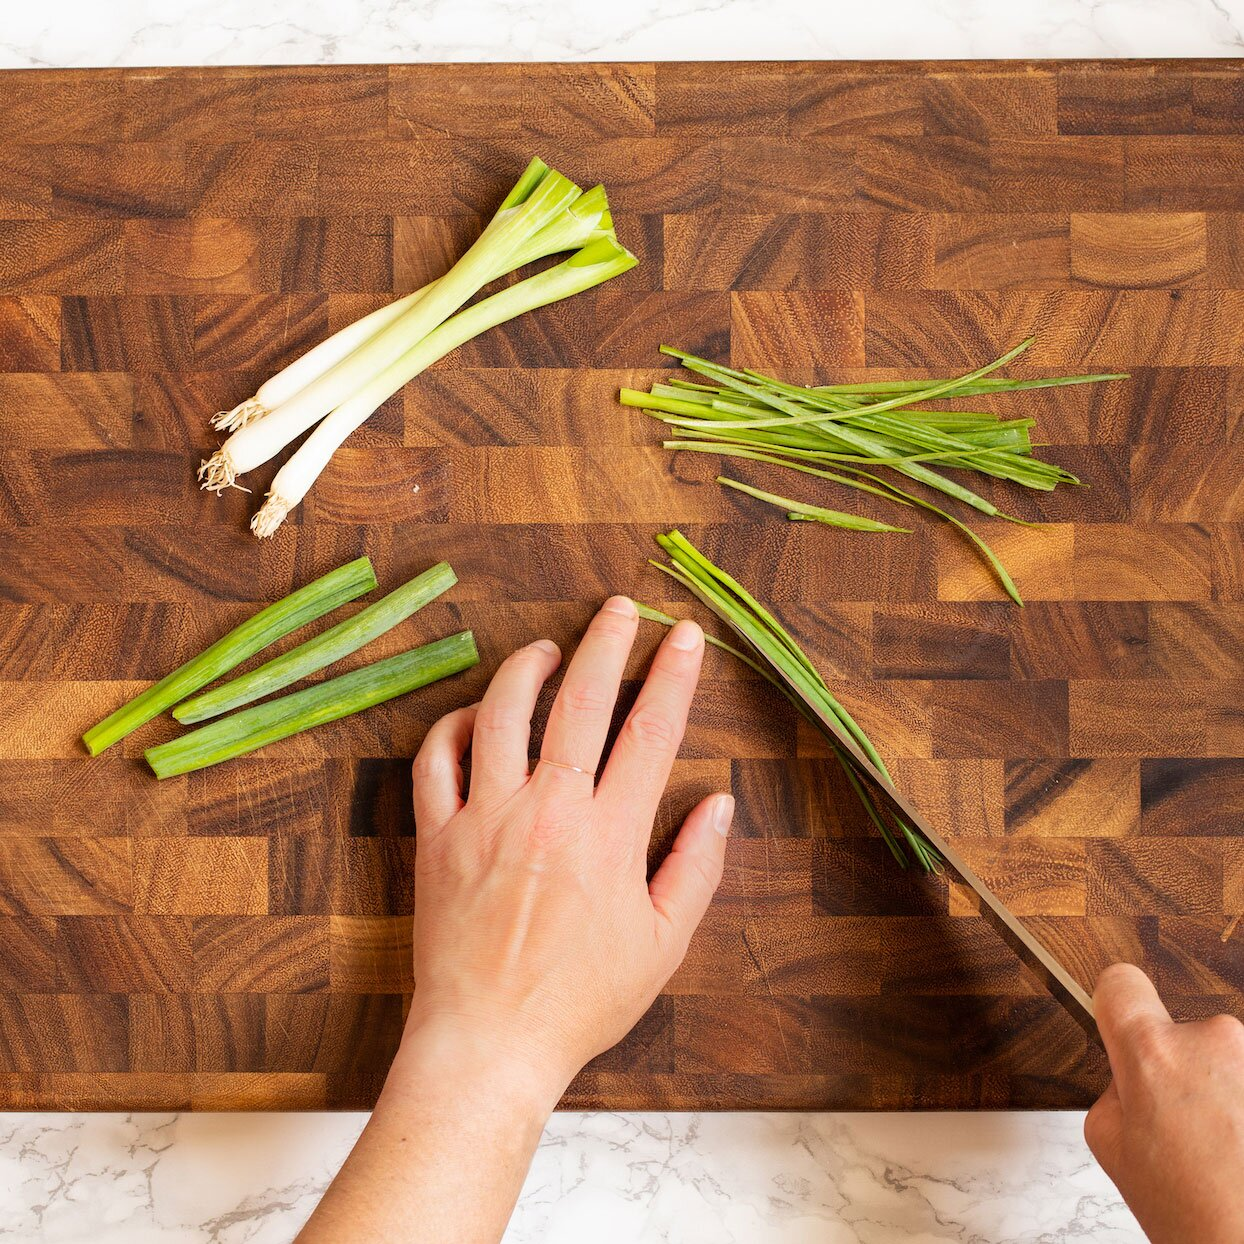 cutting green onions lengthwise on a wooden cutting board